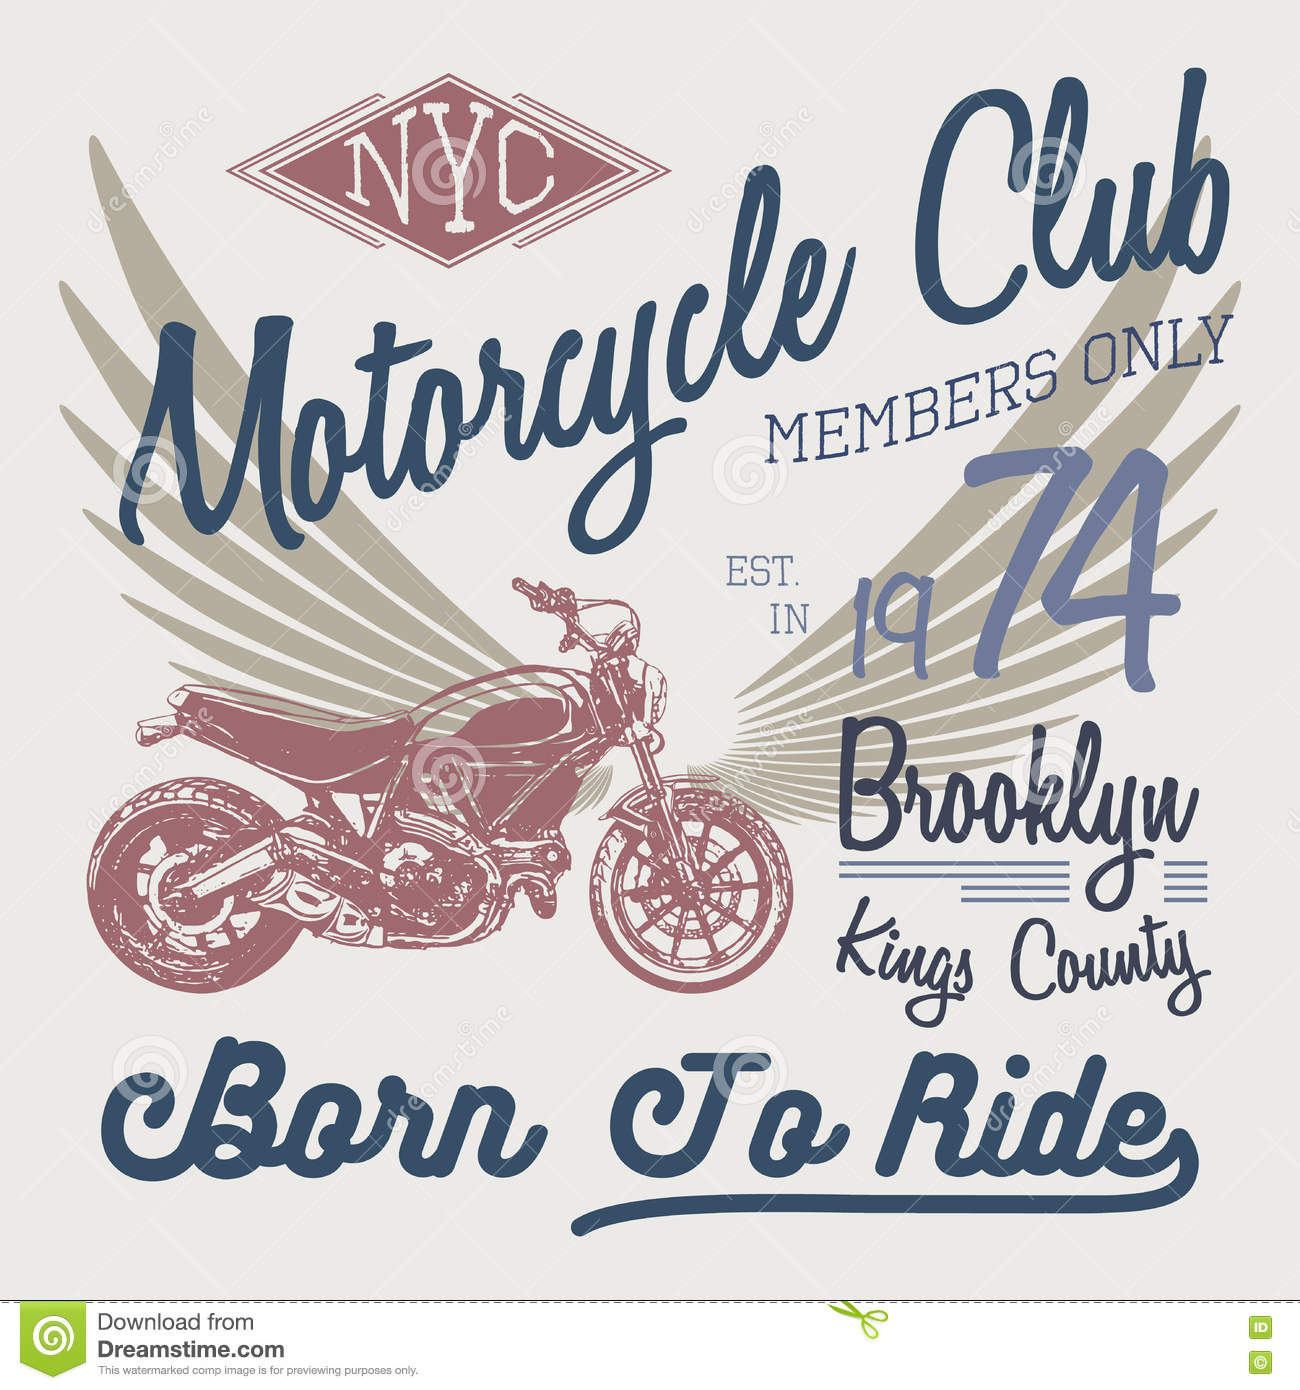 All graphics newest royalty free stock photos stock illustrations - T Shirt Typography Design Motorcycle Vector Nyc Printing Graphics Typographic Vector Illustration